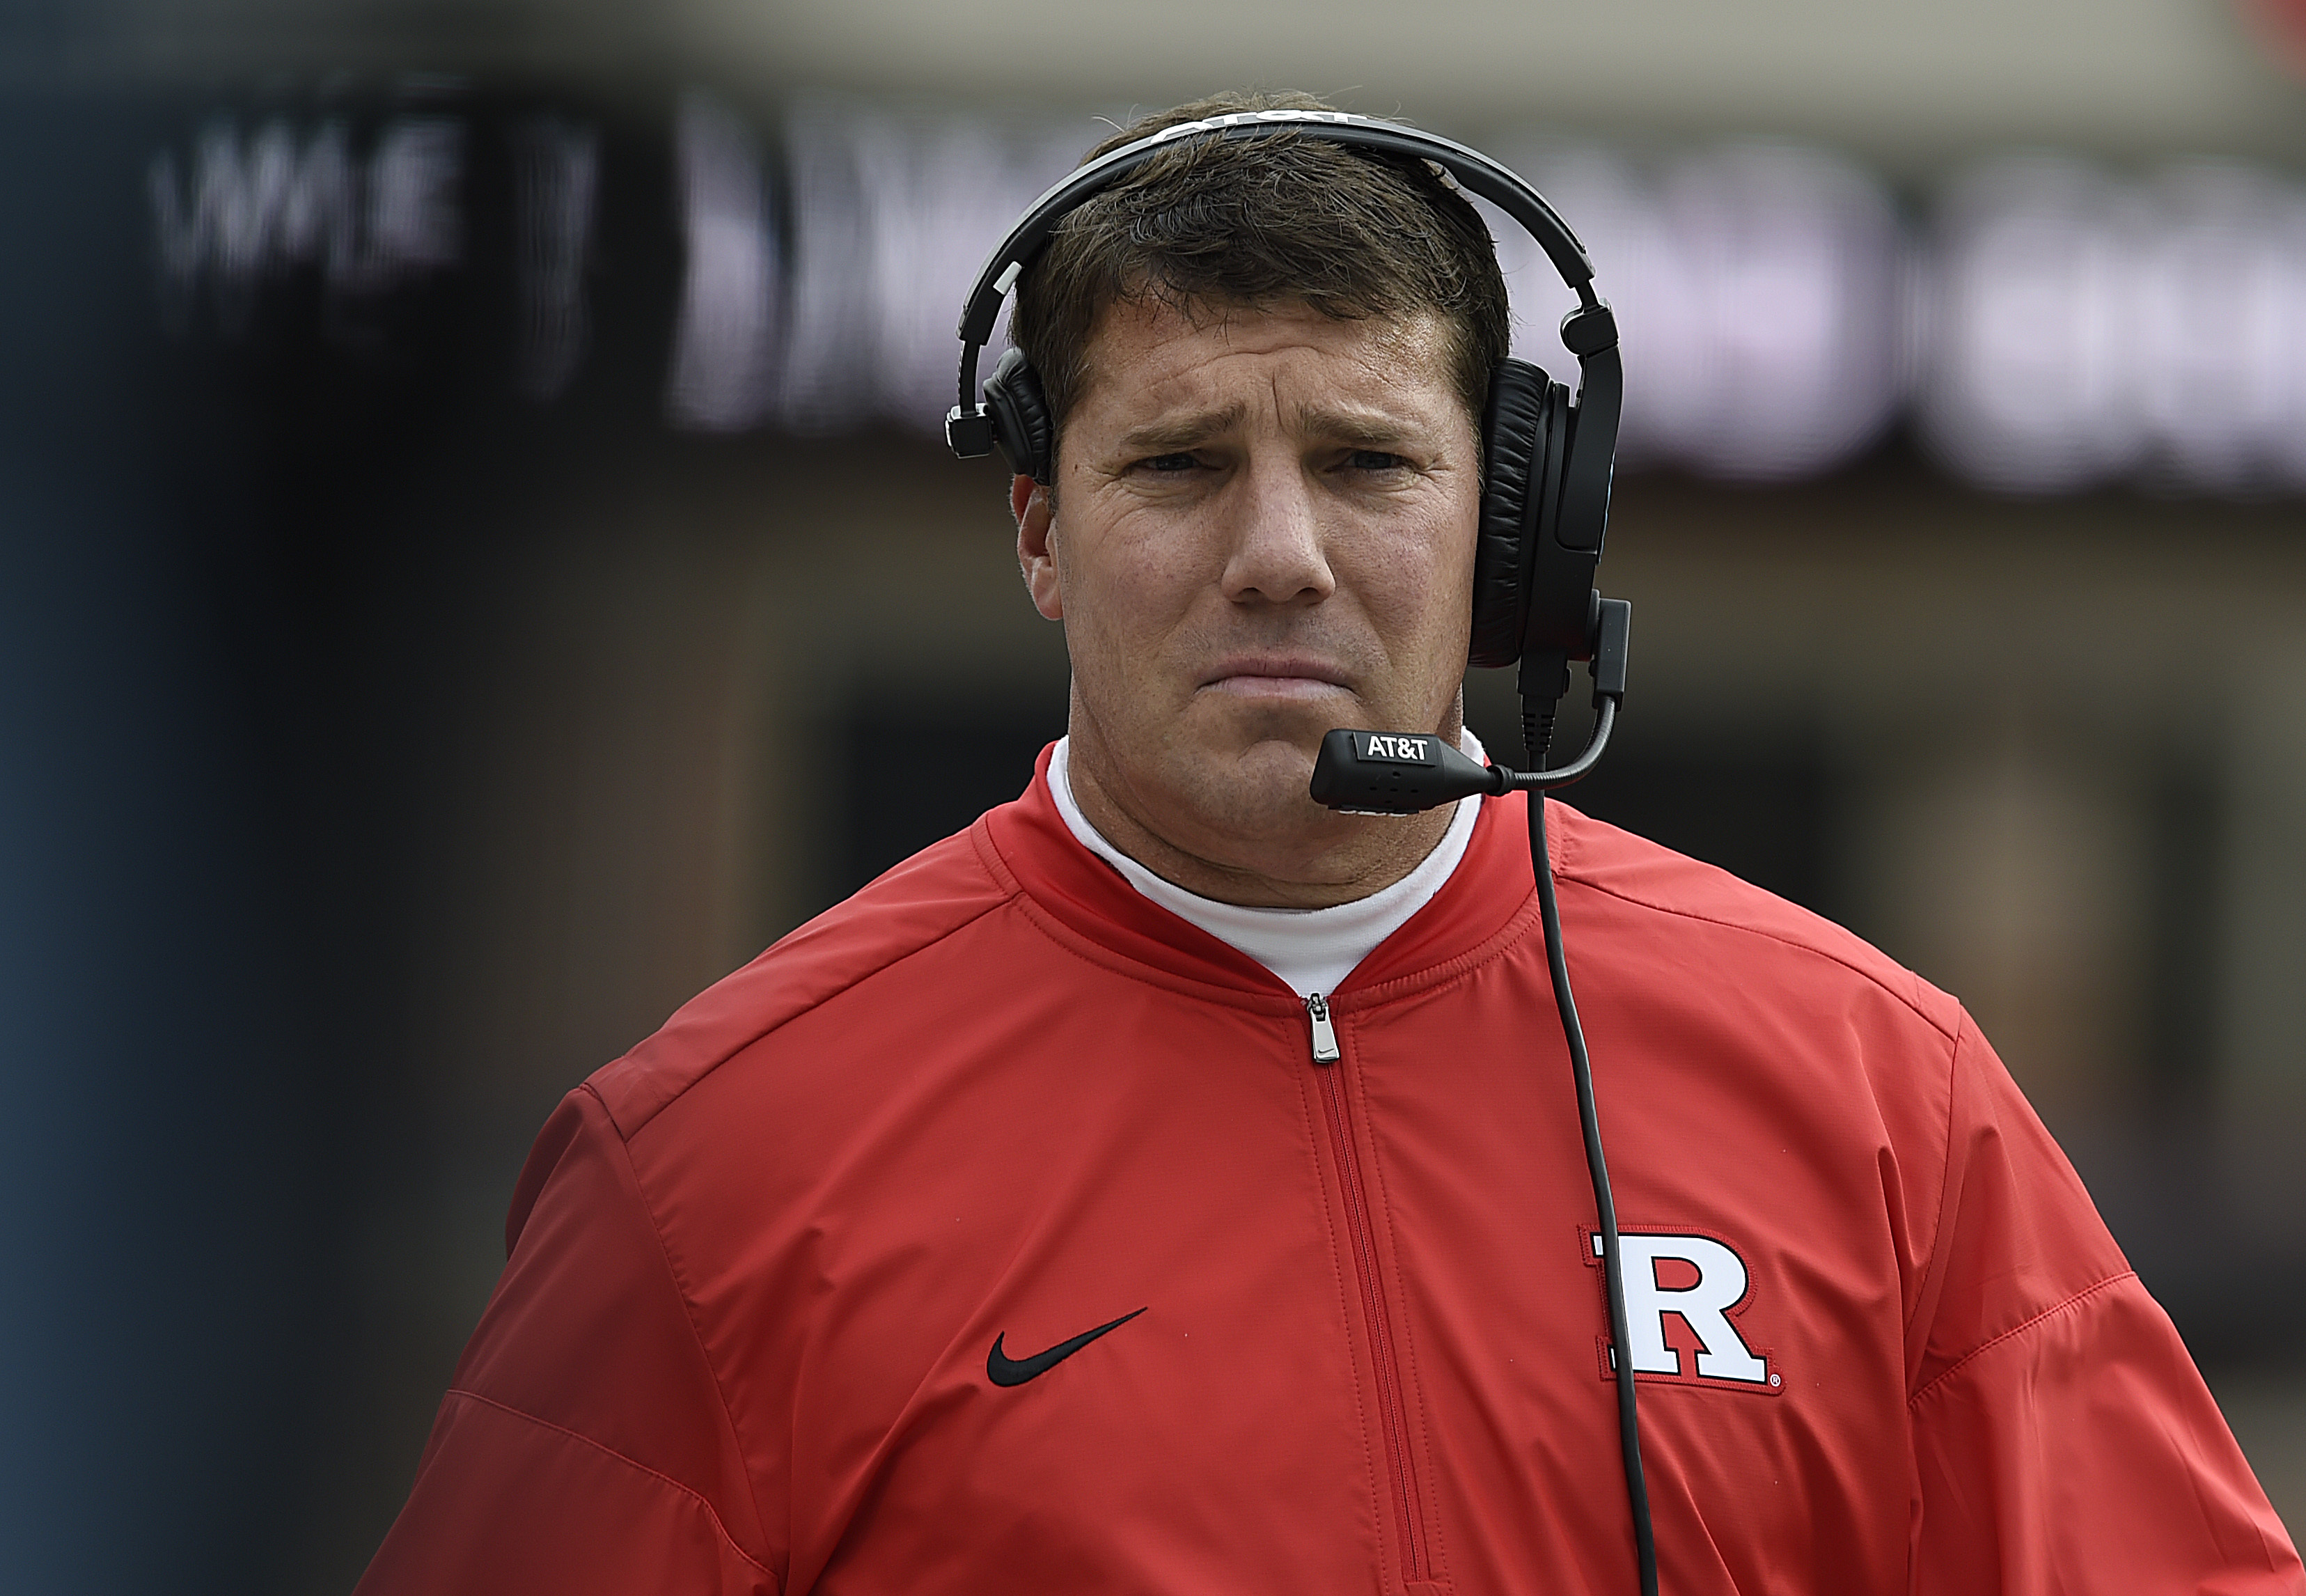 Rutgers head coach Chris Ash walks to the sideline after a timeout against Maryland during the first half of an NCAA college football game, Saturday, Nov. 26, 2016 in College Park, Md. Maryland won 31-13. (AP Photo/Gail Burton)